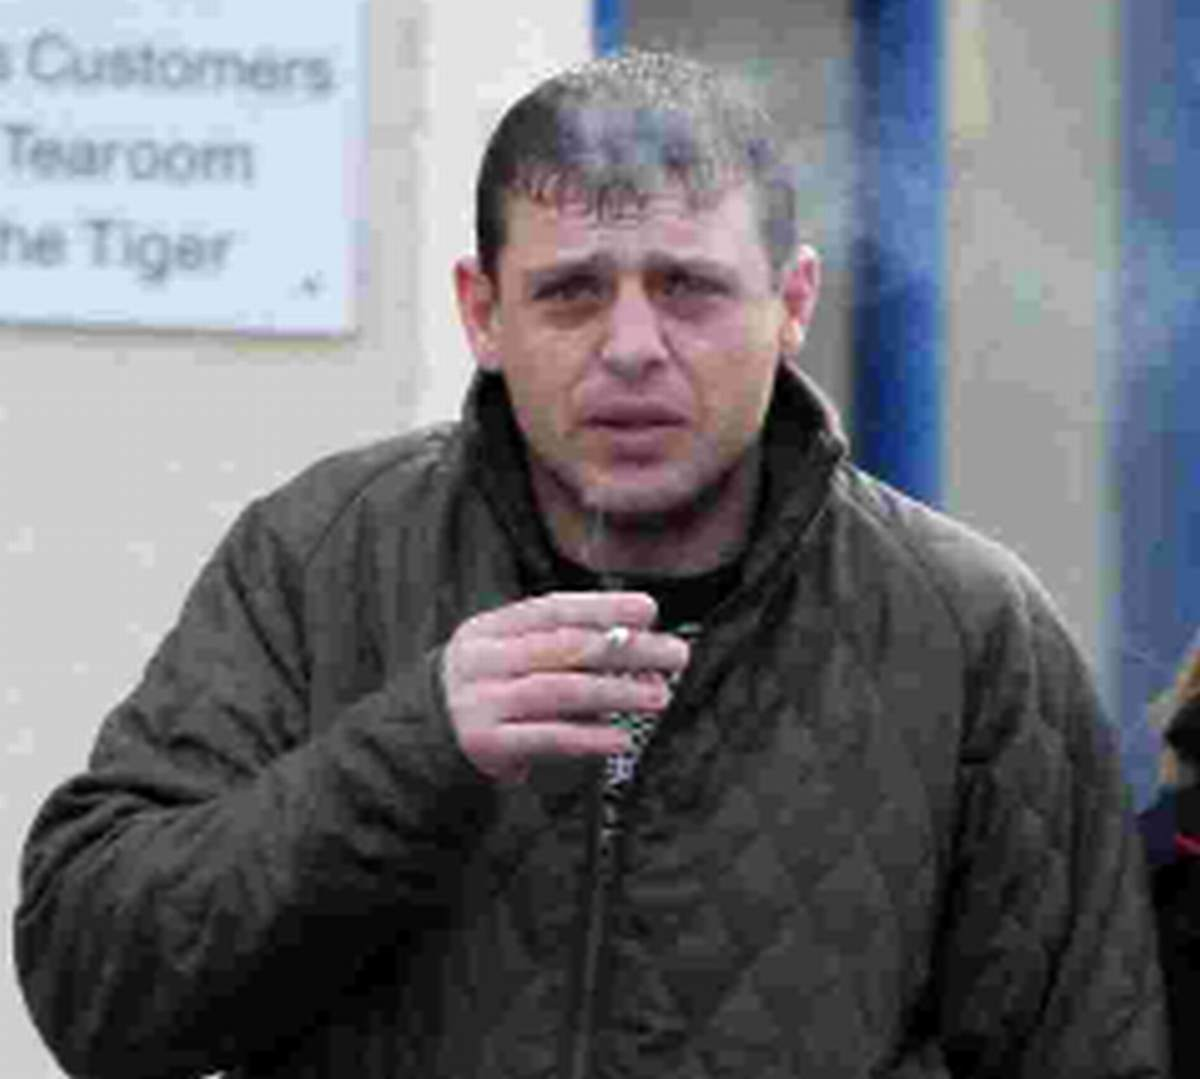 ANIMAL CRUELTY: Martyn Dashwood who has pleaded guilty to 16 charges